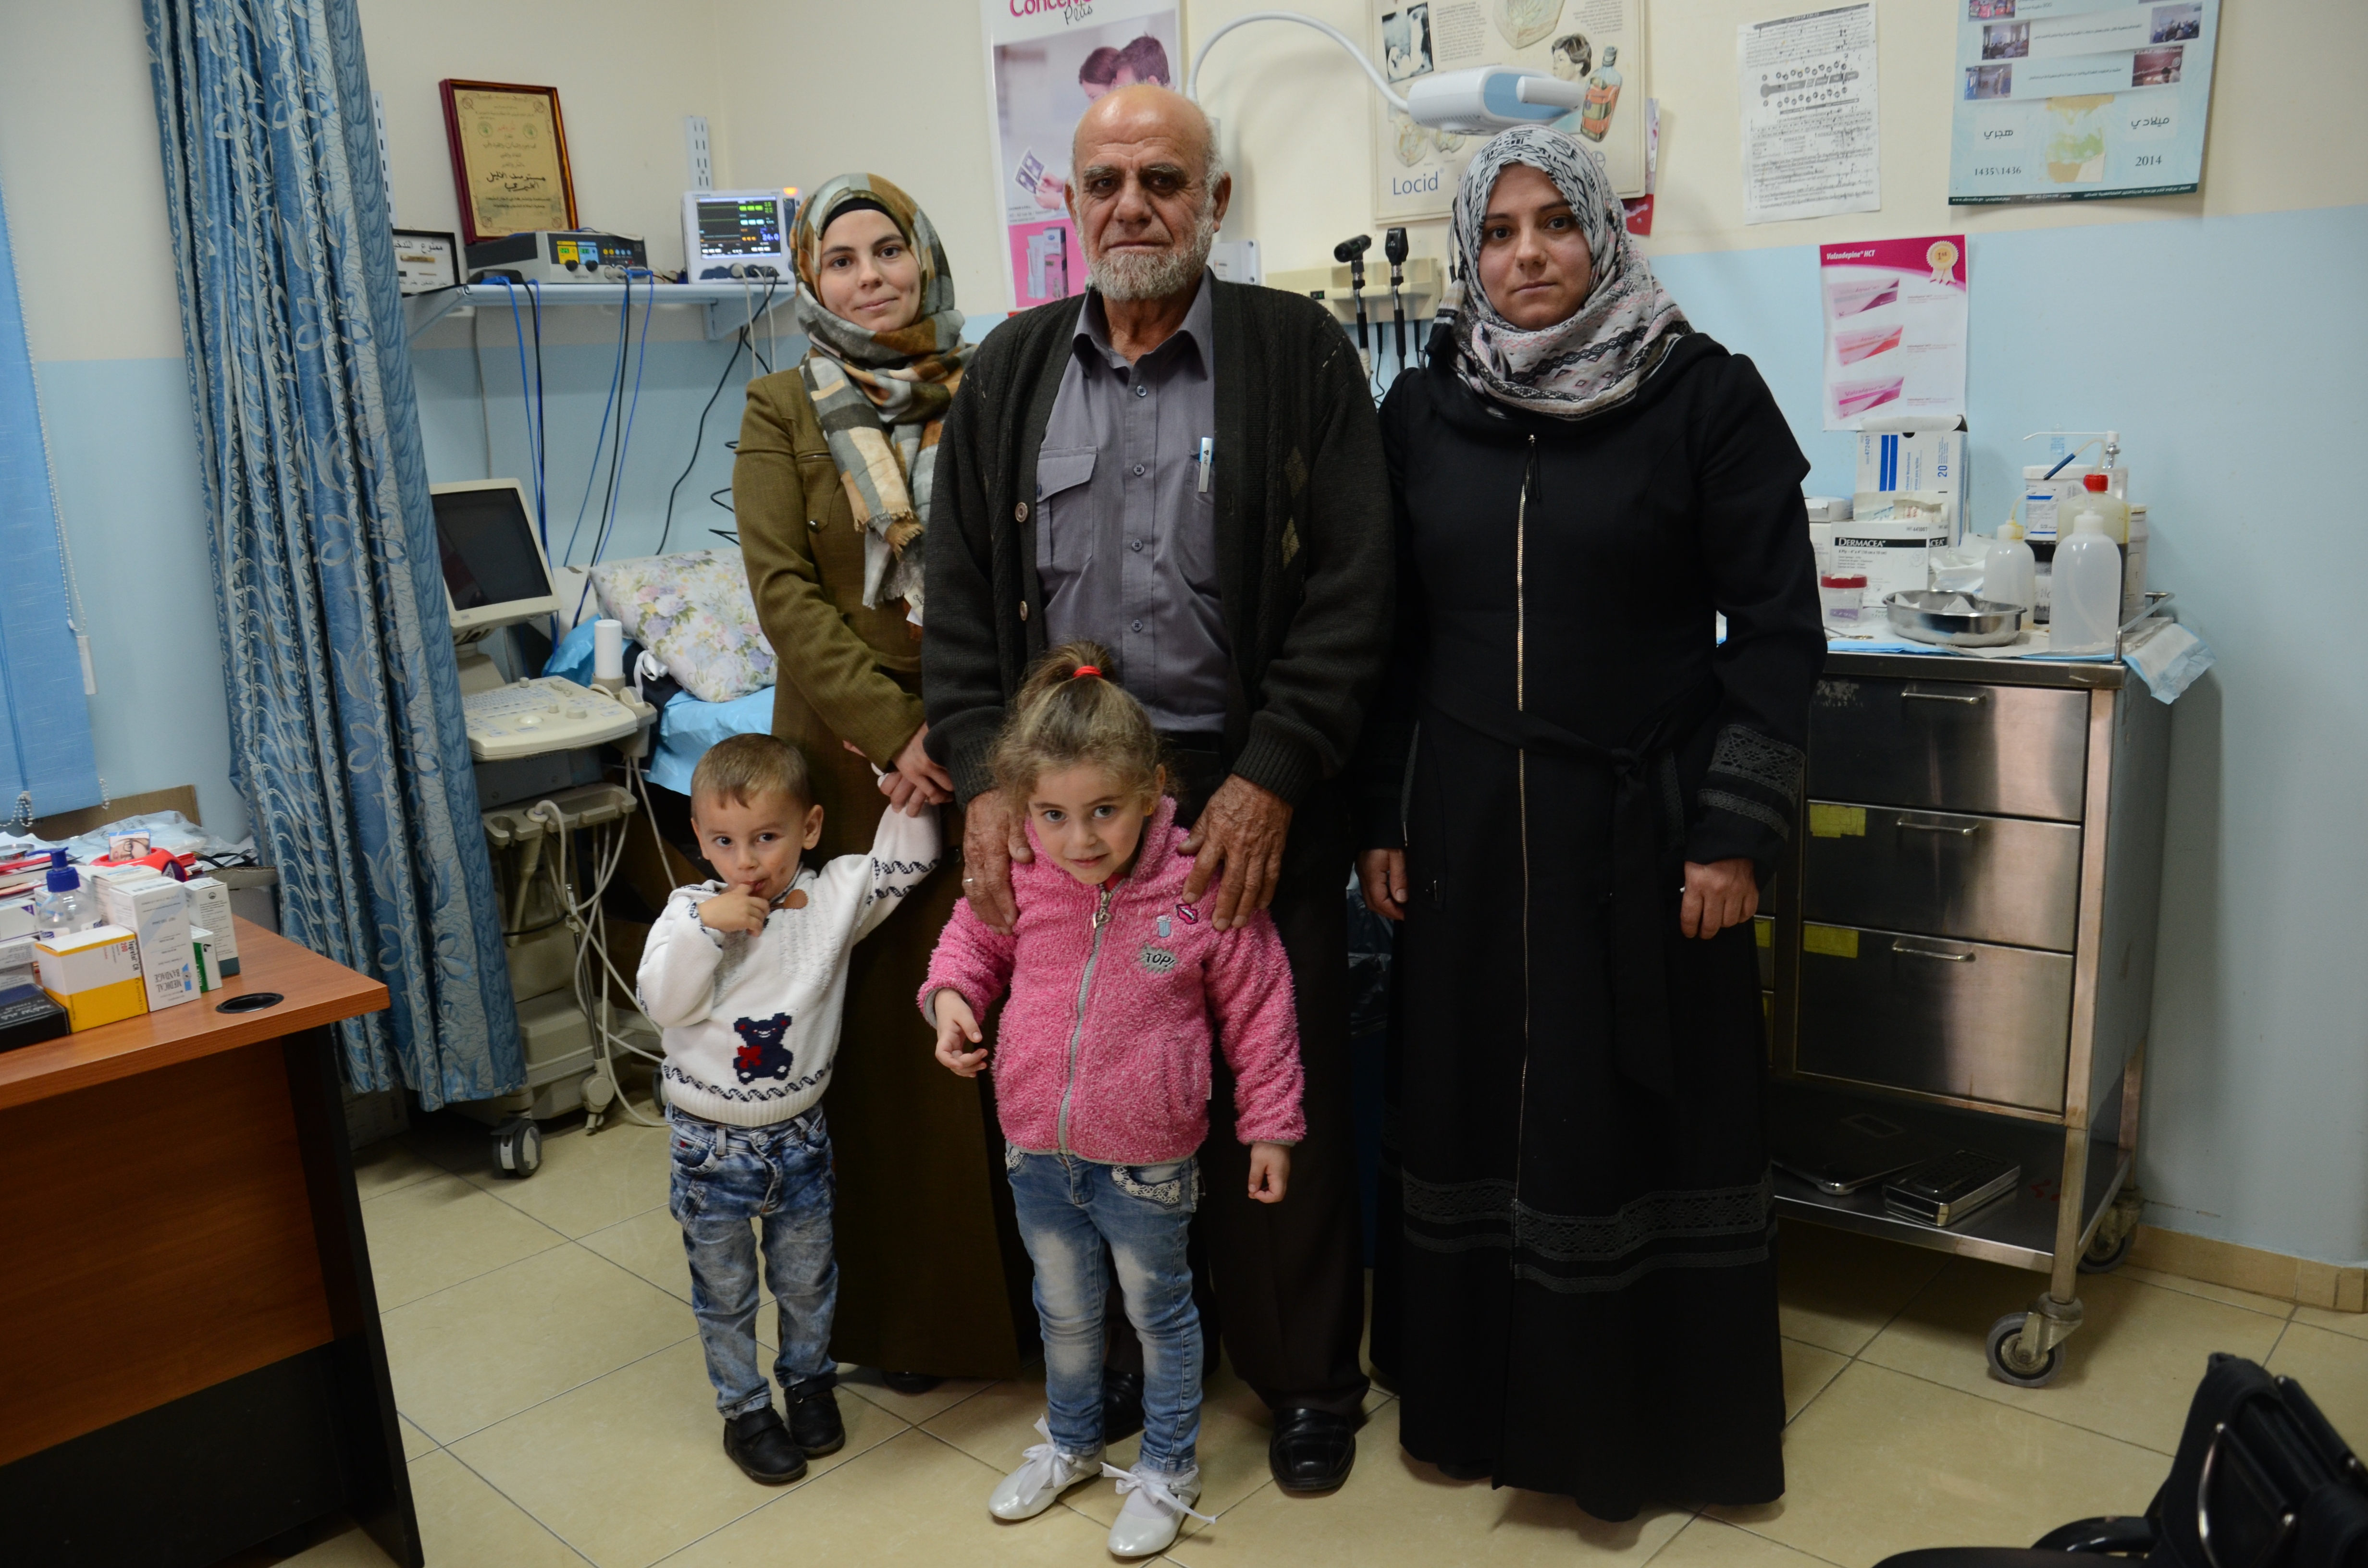 Yusra (back row, left) is pictured with her son, father, sister and niece. Hebron Charitable Medical Center is part of their 'support system.' (Photo courtesy of Anera)